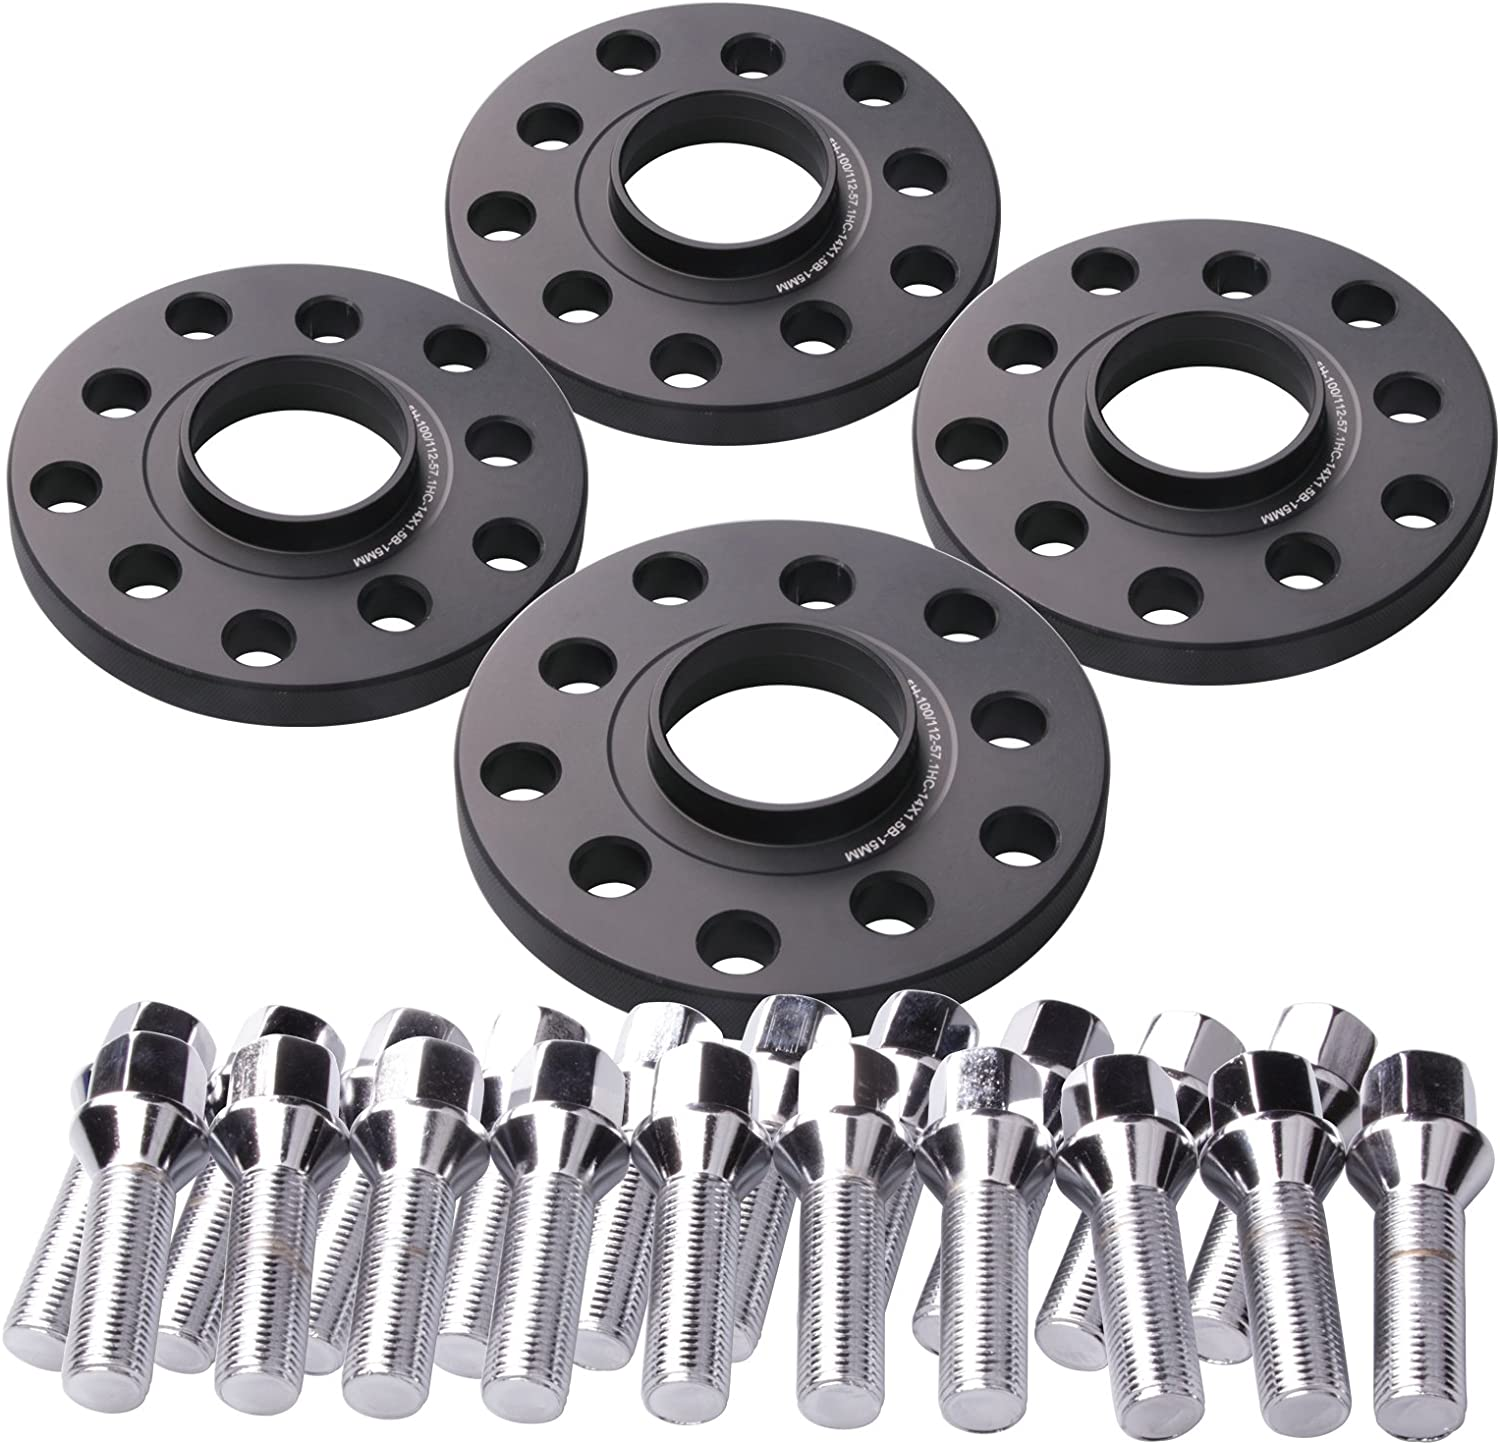 Audi A4 A5 Hubcentric 15mm Wheel Spacers Radius Bolts,Locking Bolts